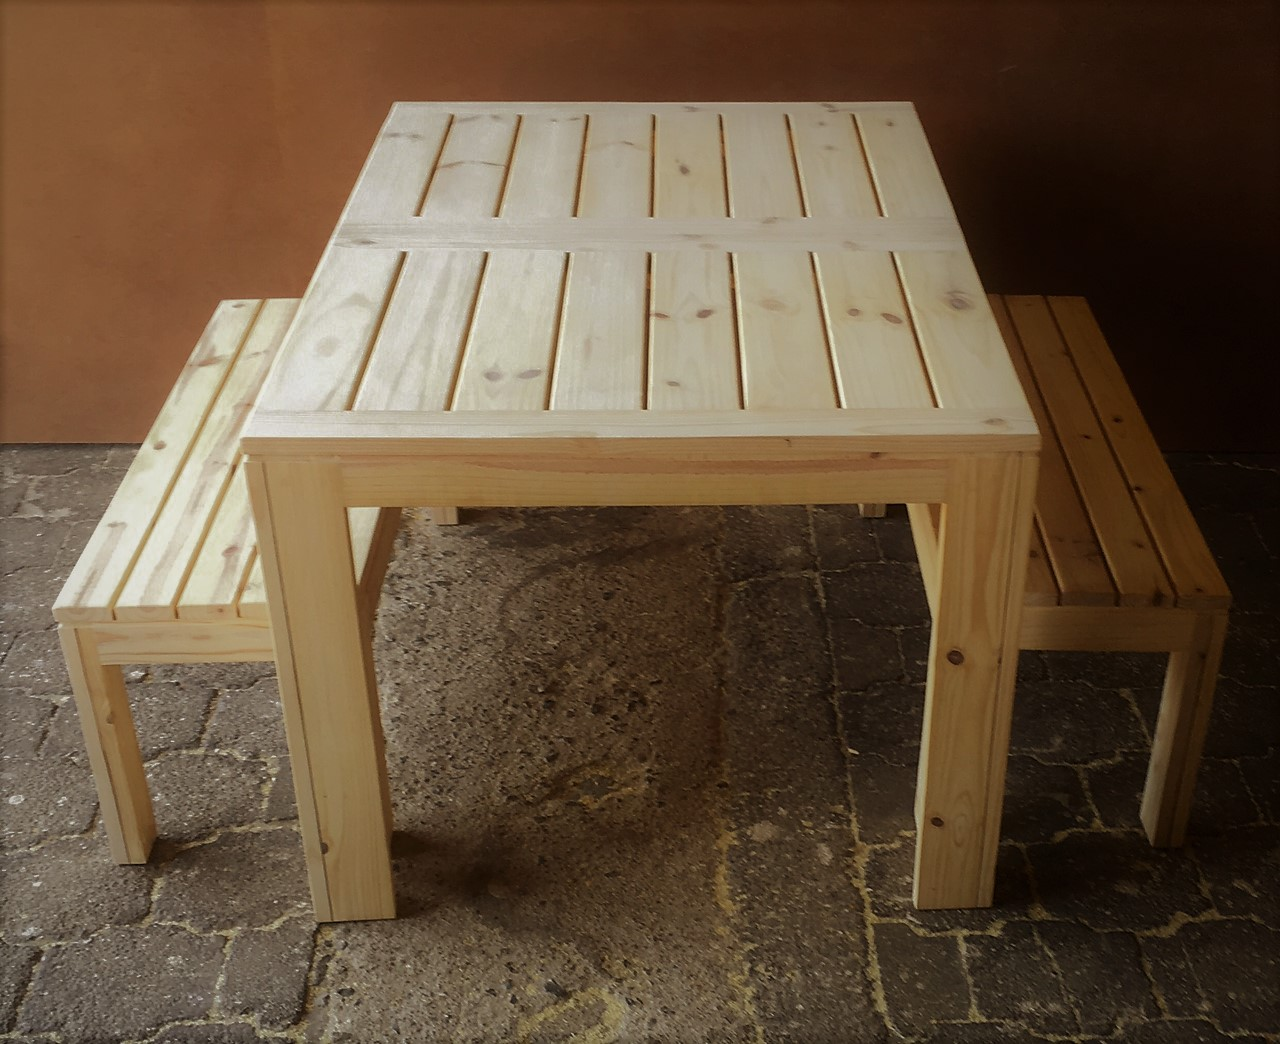 Patio table Cottage series 1400 slatted strips Combo - Raw